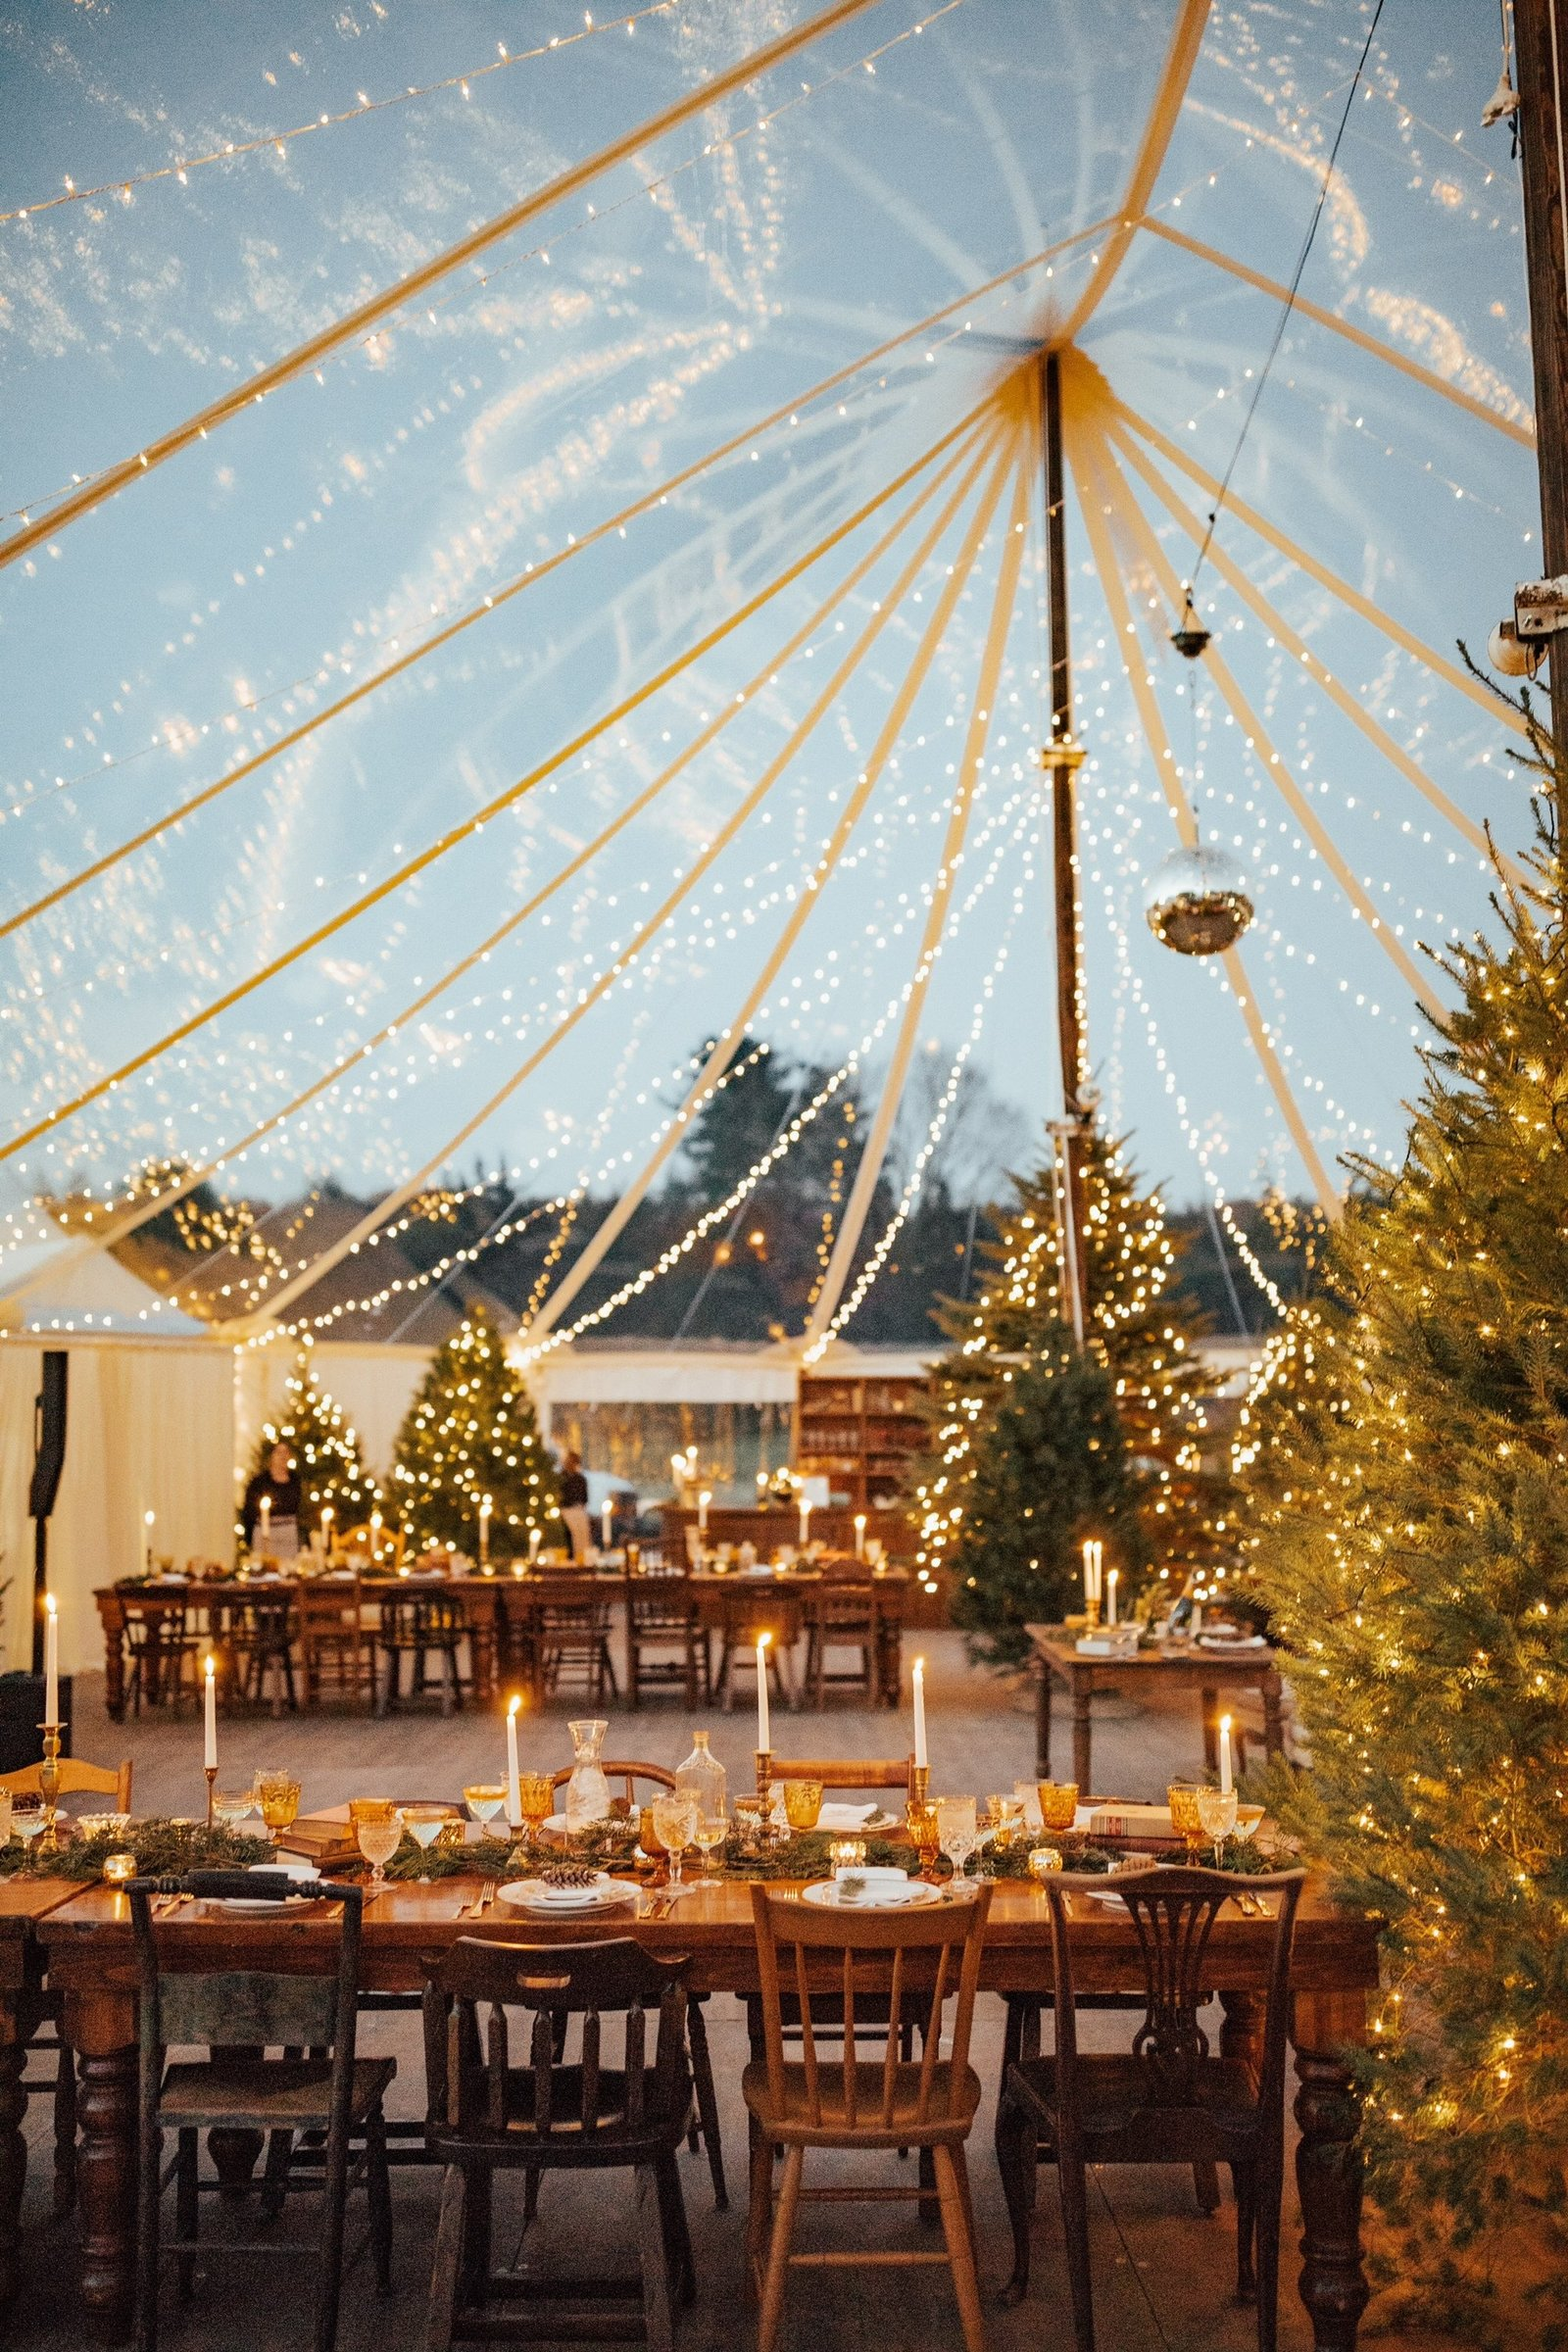 Christy-l-Johnston-Photography-Monica-Relyea-Events-Noelle-Downing-Instagram-Noelle_s-Favorite-Day-Wedding-Battenfelds-Christmas-tree-farm-Red-Hook-New-York-Hudson-Valley-upstate-november-2019-IMG_6638